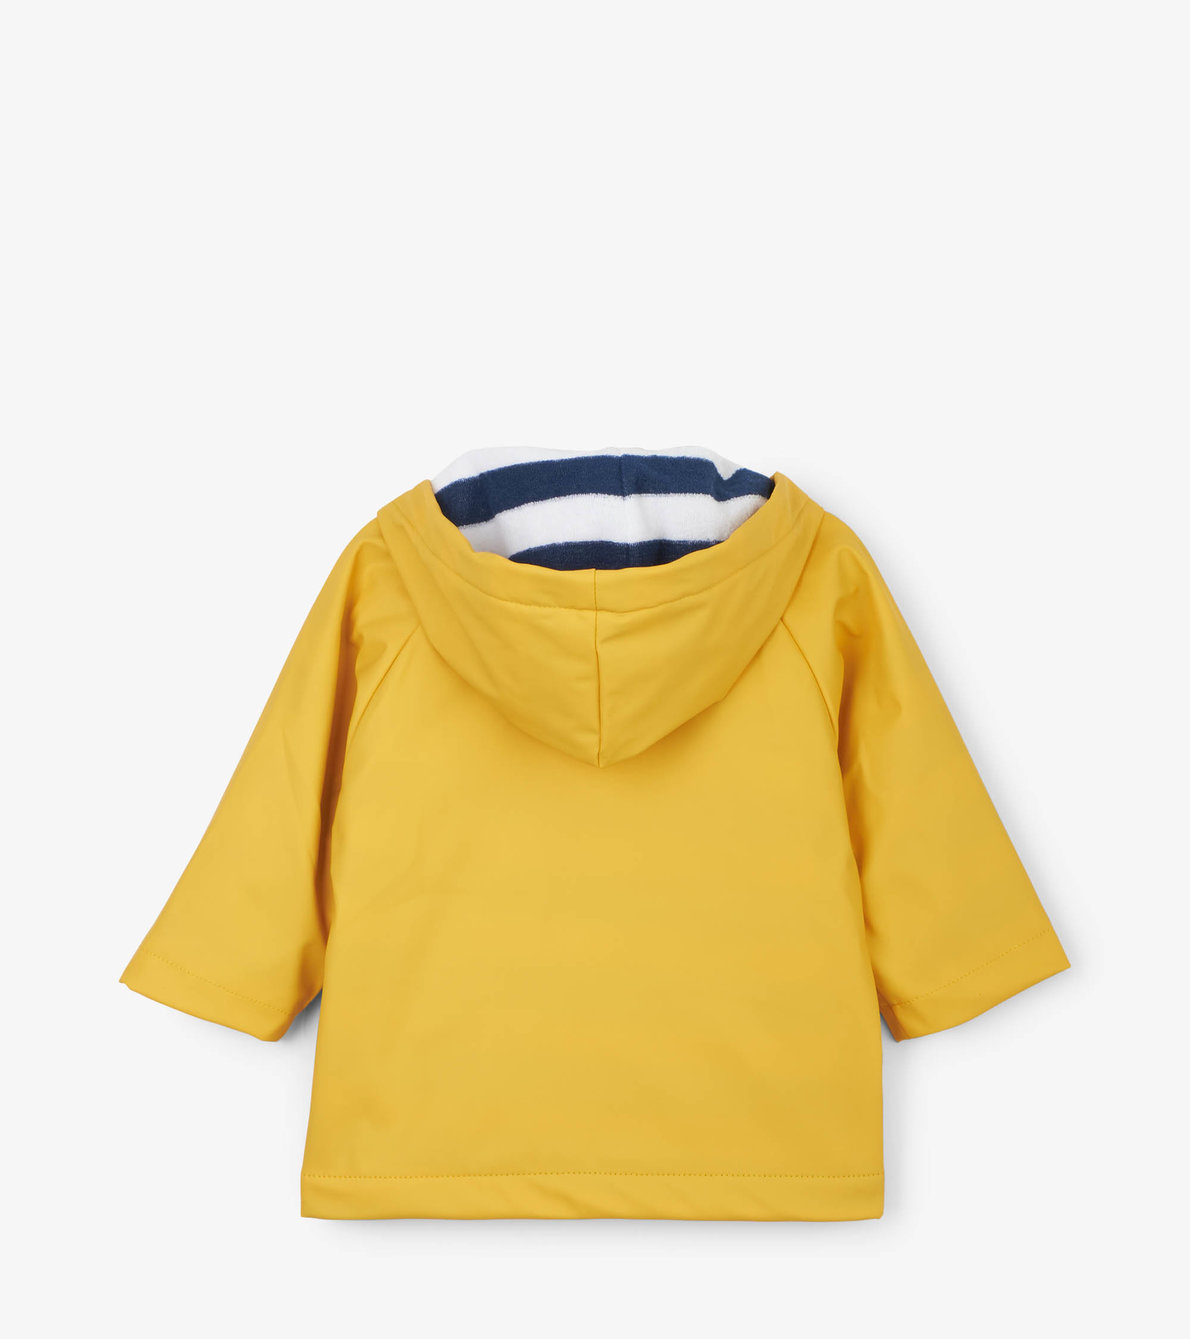 View larger image of Yellow Baby Raincoat